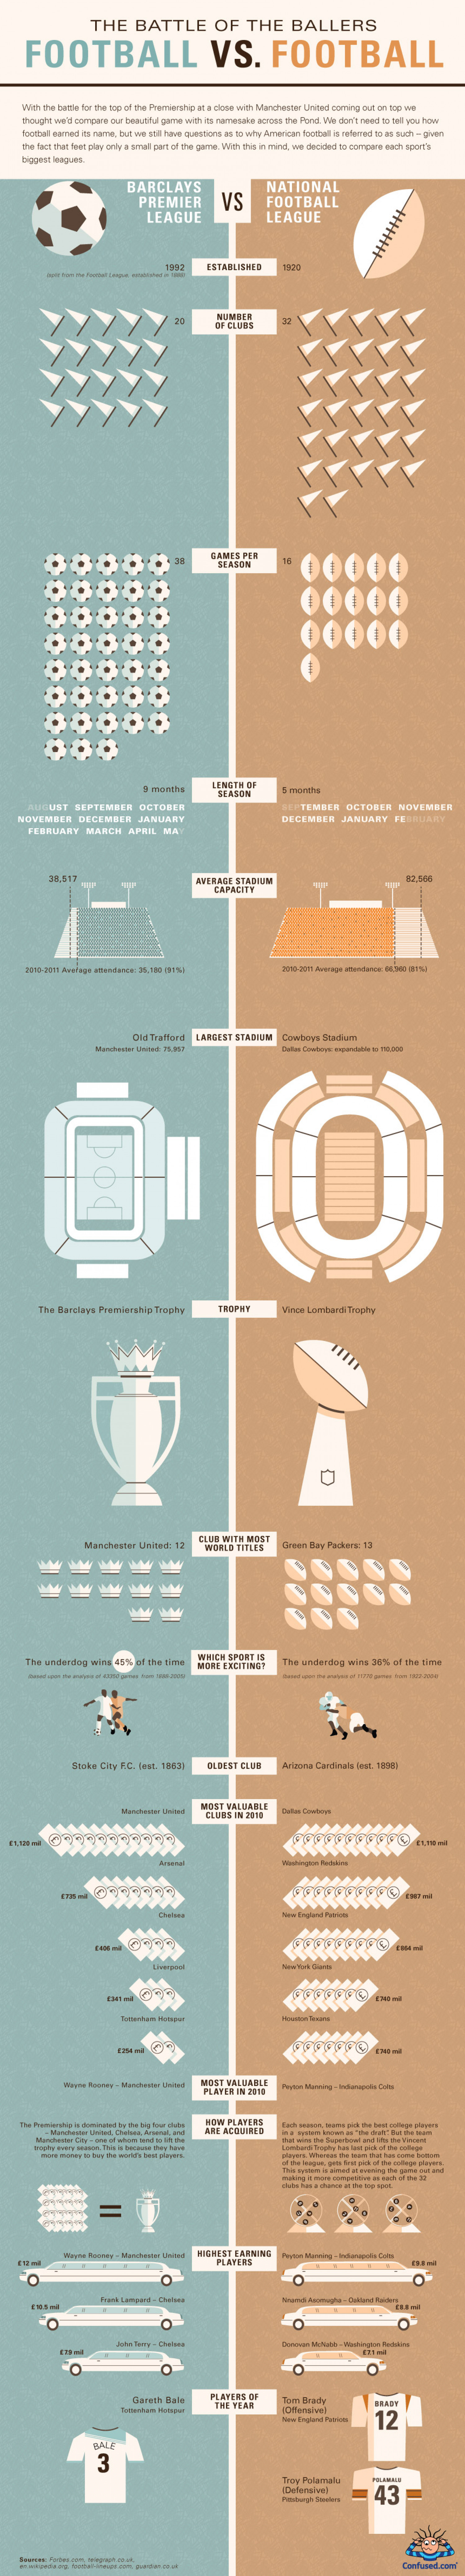 The battle of the ballers: Football vs football Infographic